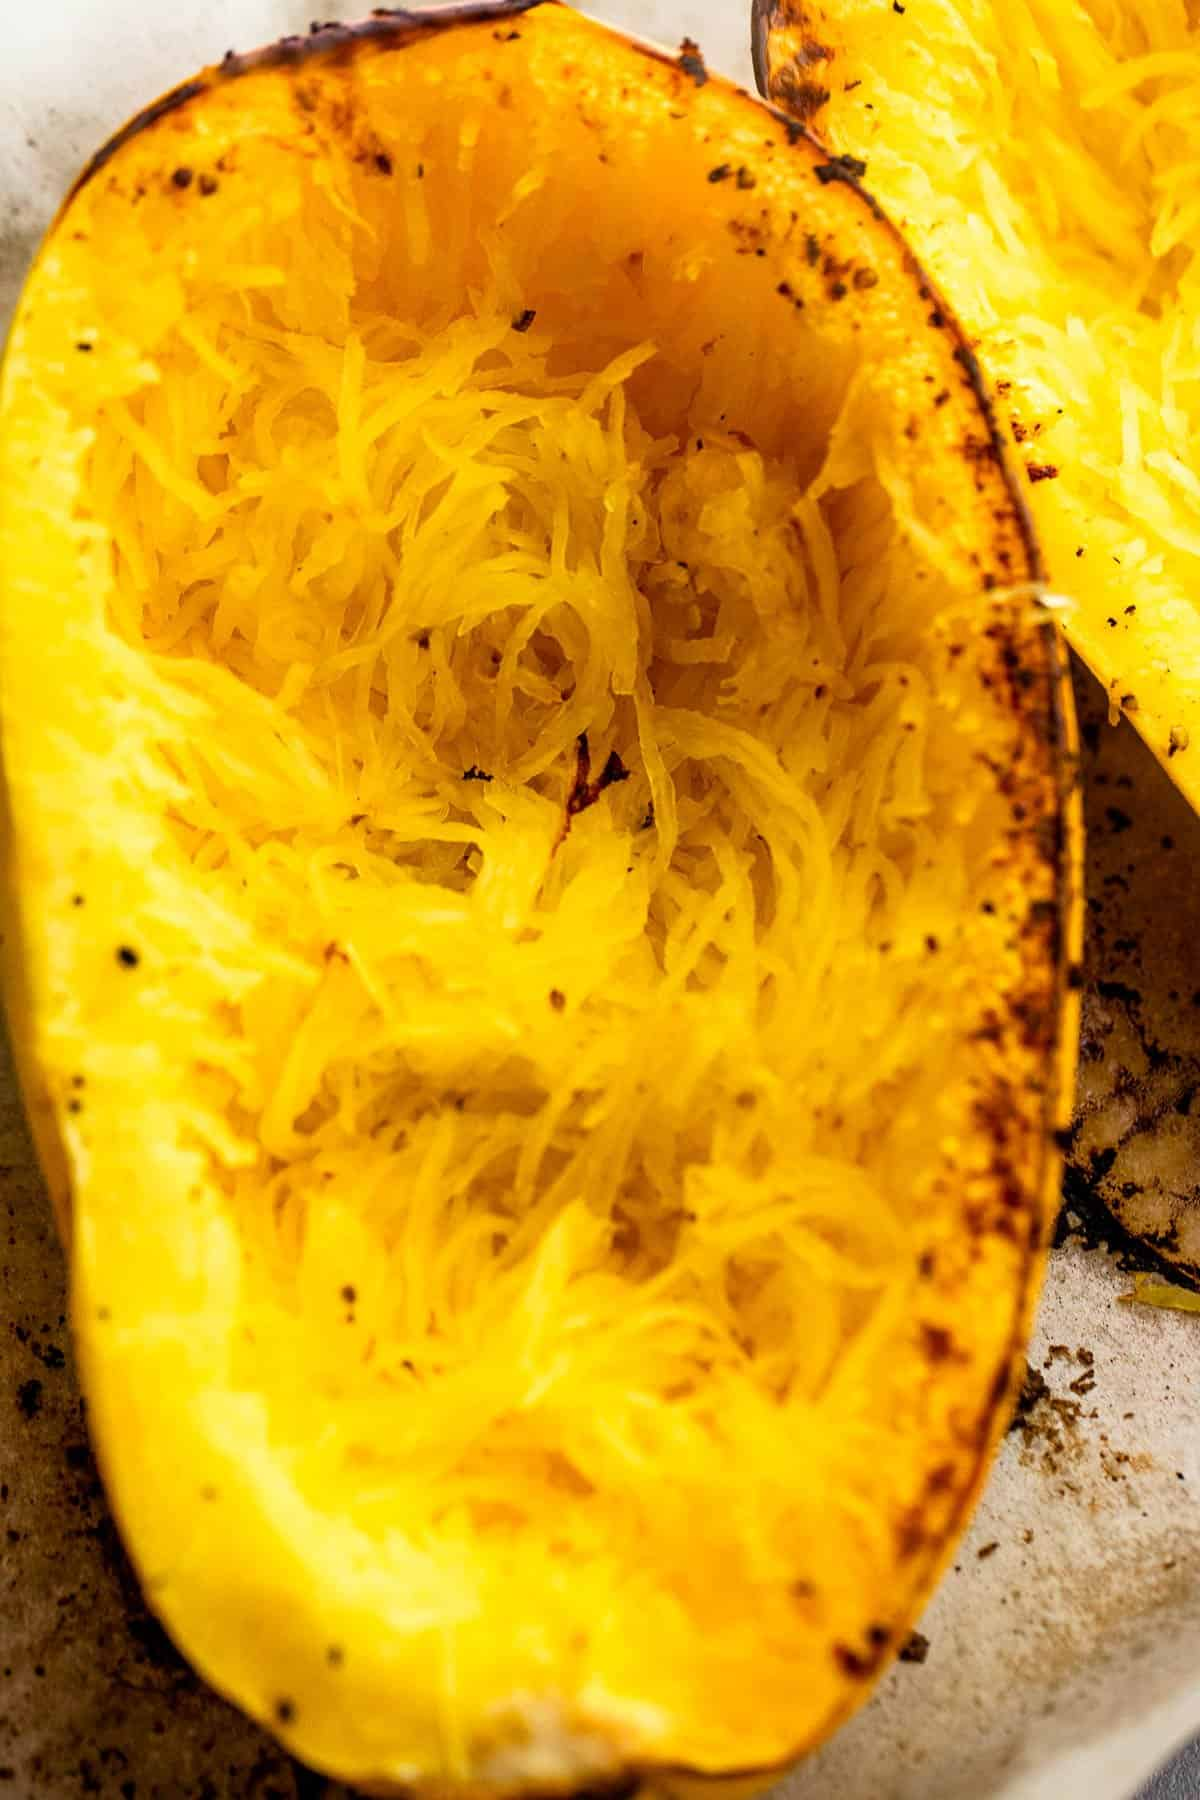 halved spaghetti squash with stringy insides